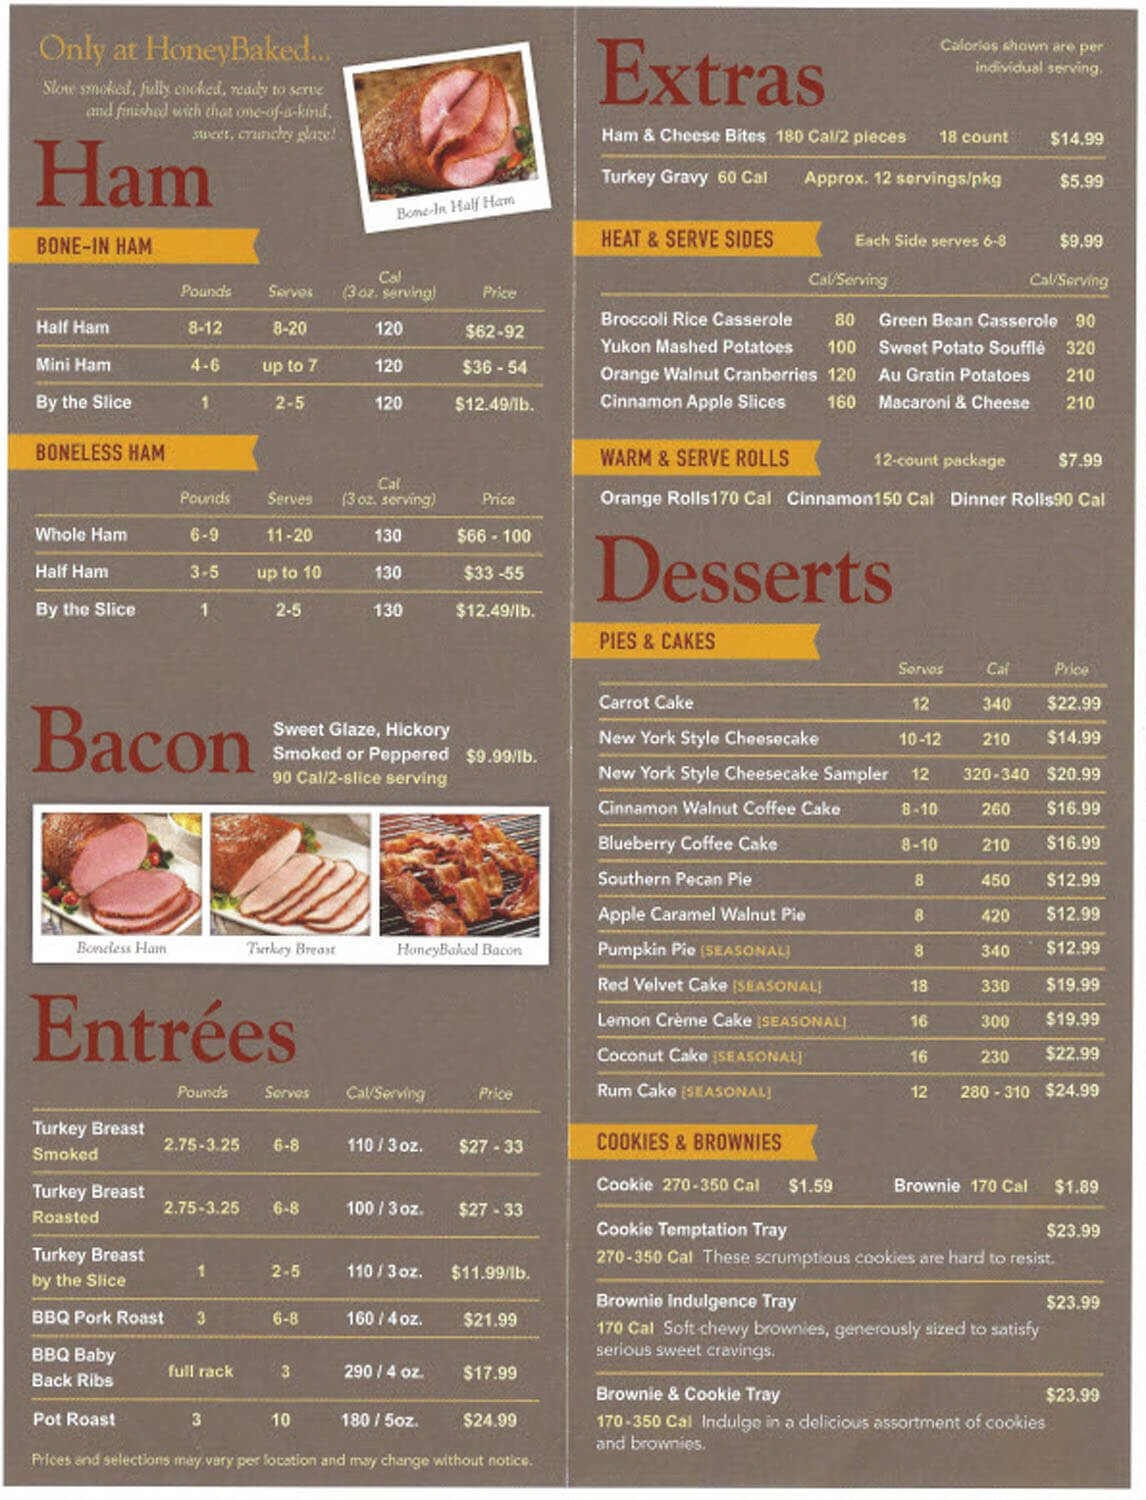 Honey Baked Ham Restaurant Menu